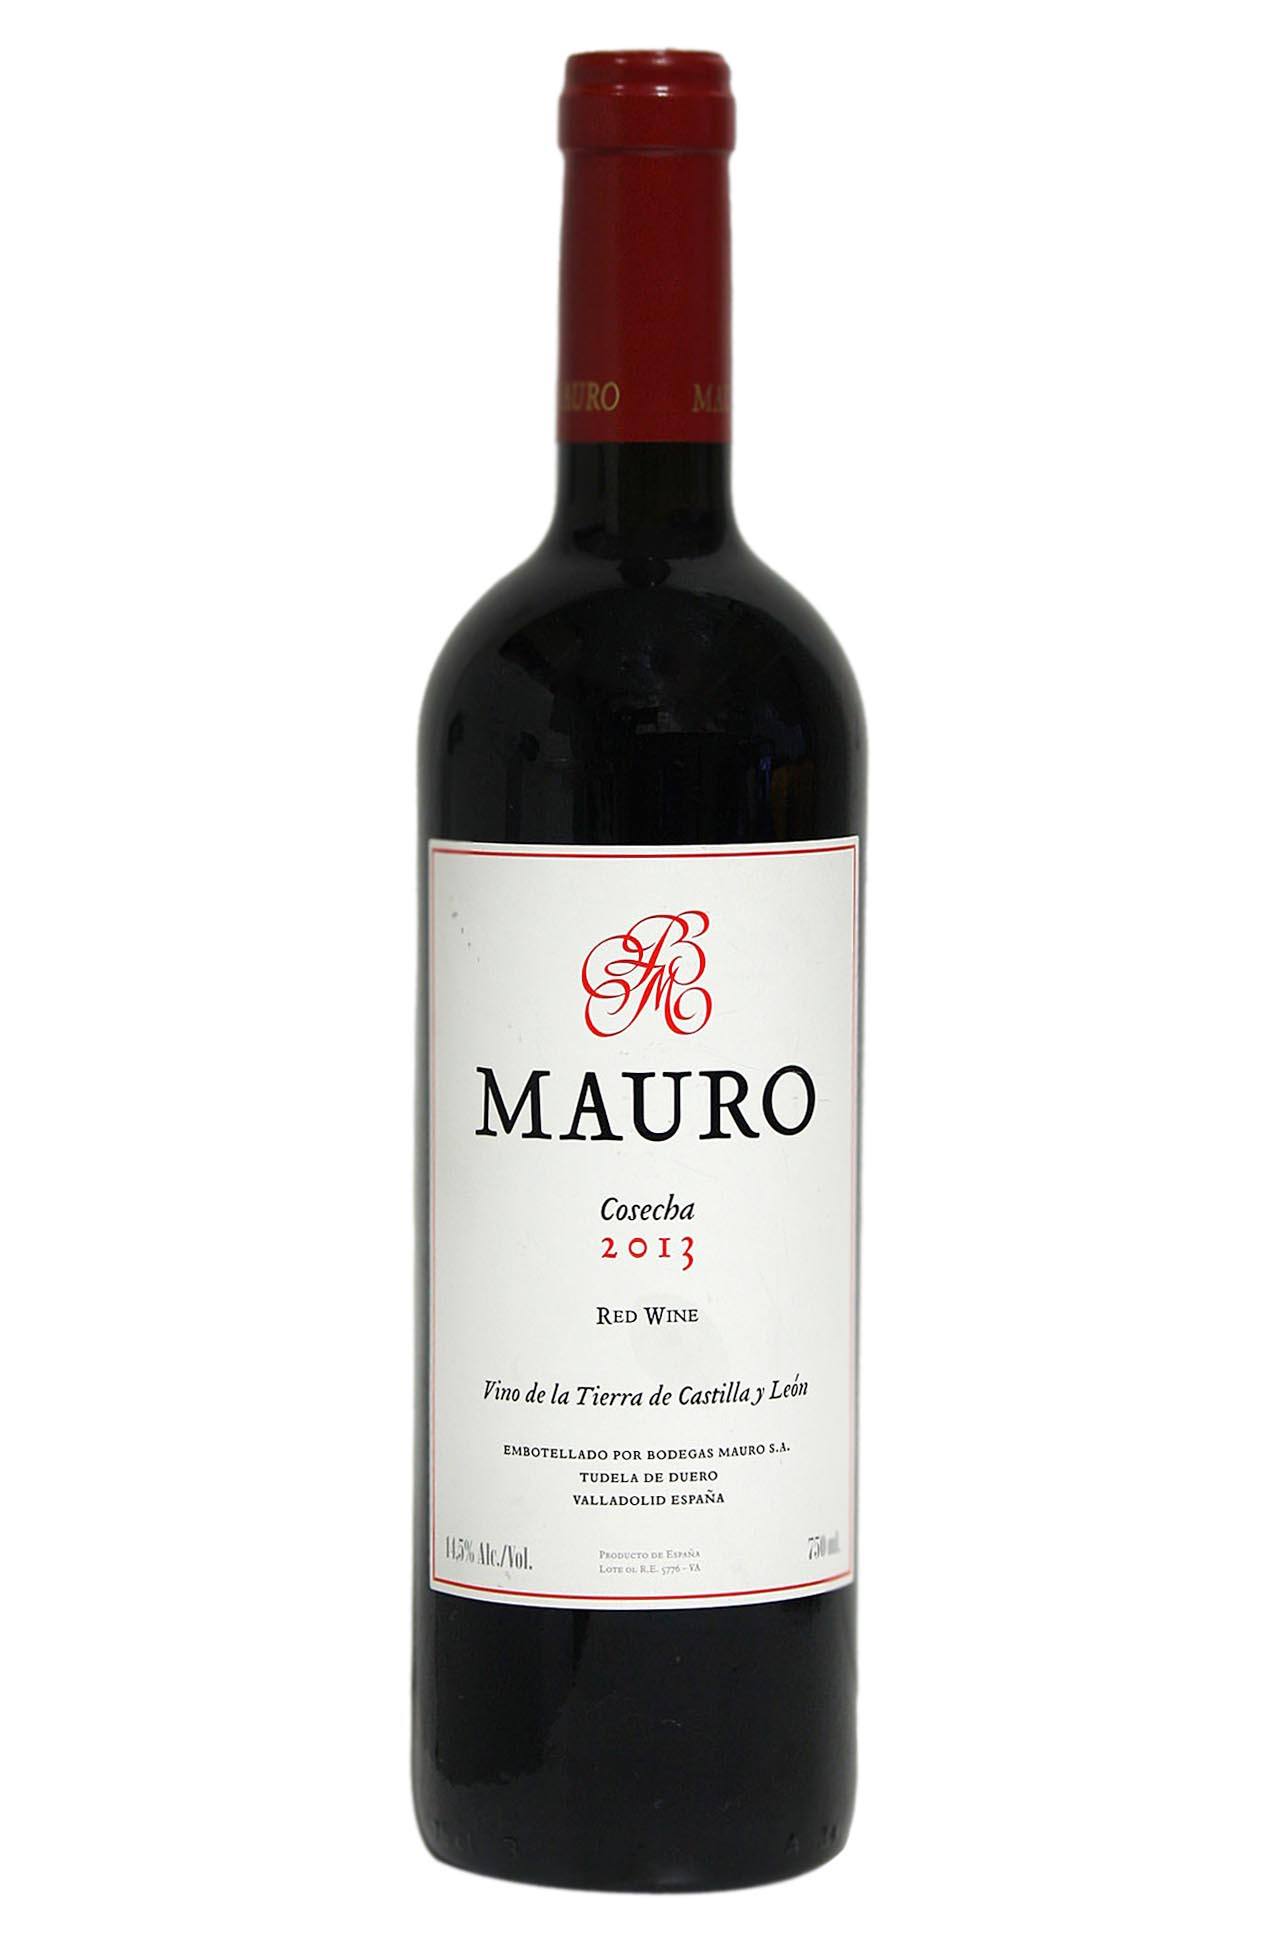 Mauro red wine